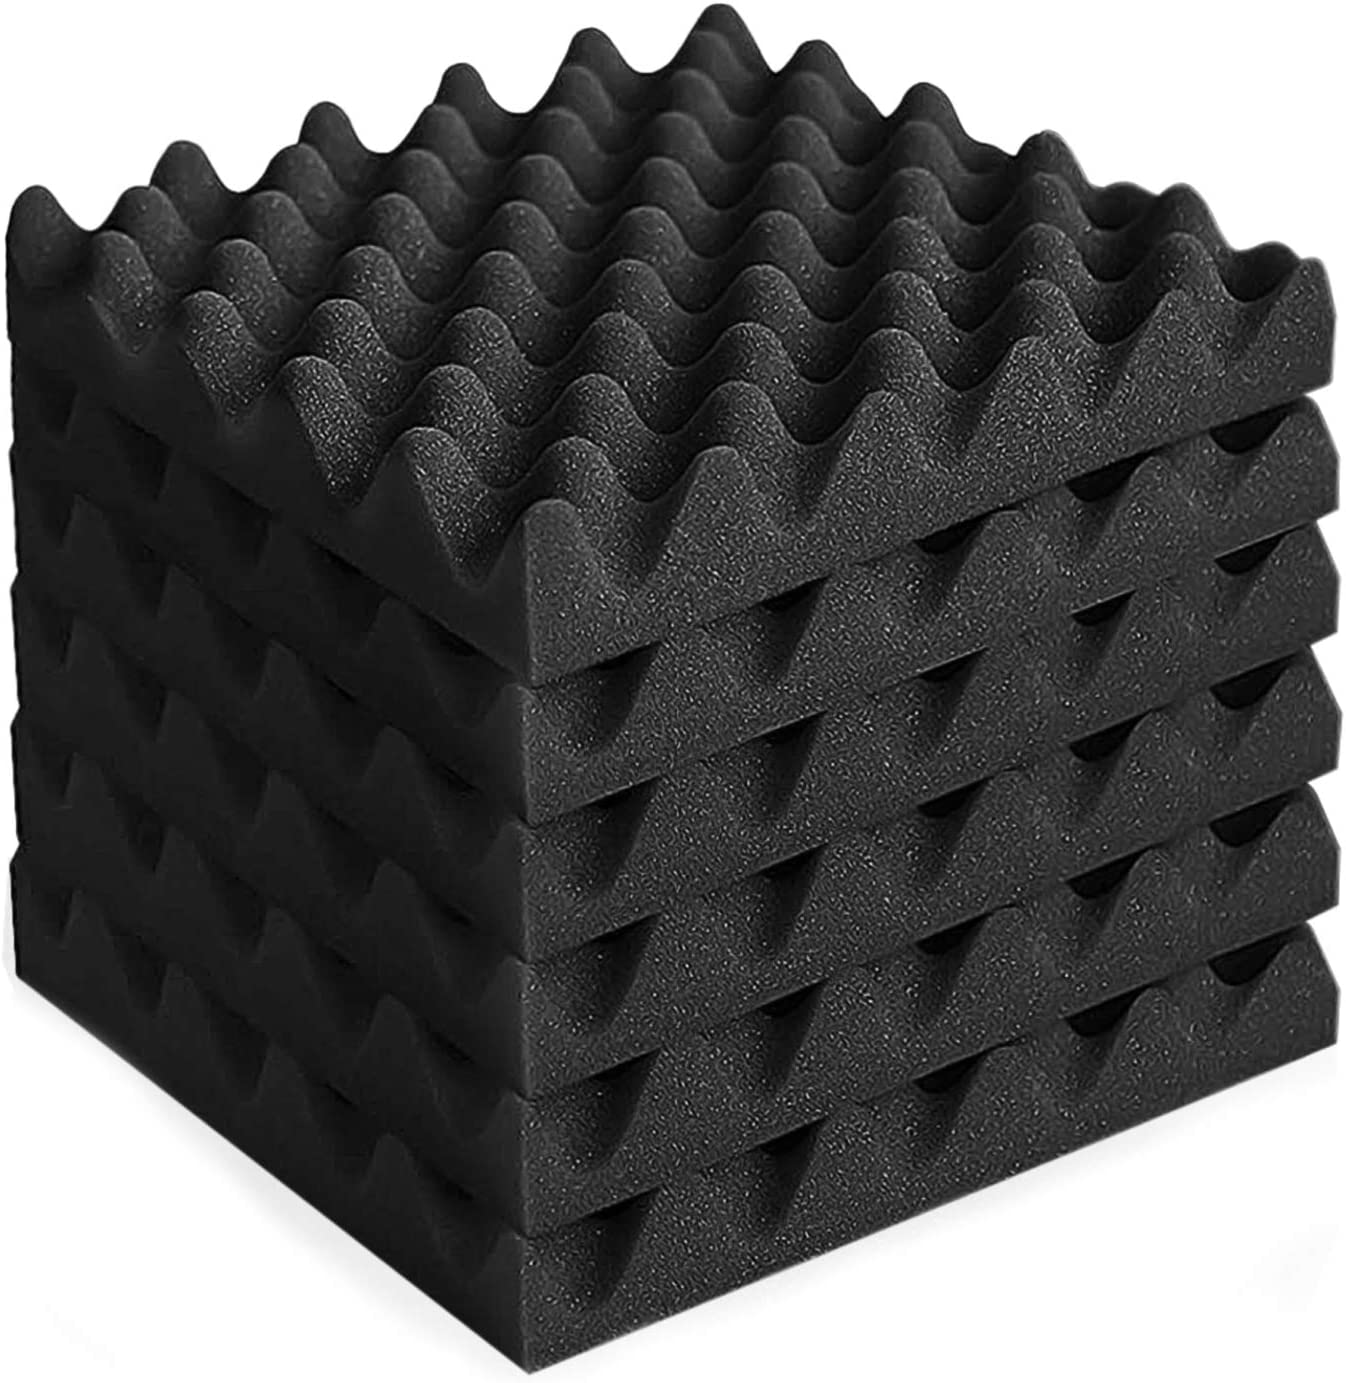 MAYQMAY 6-Pack Pyramid Acoustic Foam Panels Tiles Fireproof Soundproofing Treatment Wall Panels Offices Noise Cancelling Foam for Recording Studios 10Lx10Wx2D, Black Home